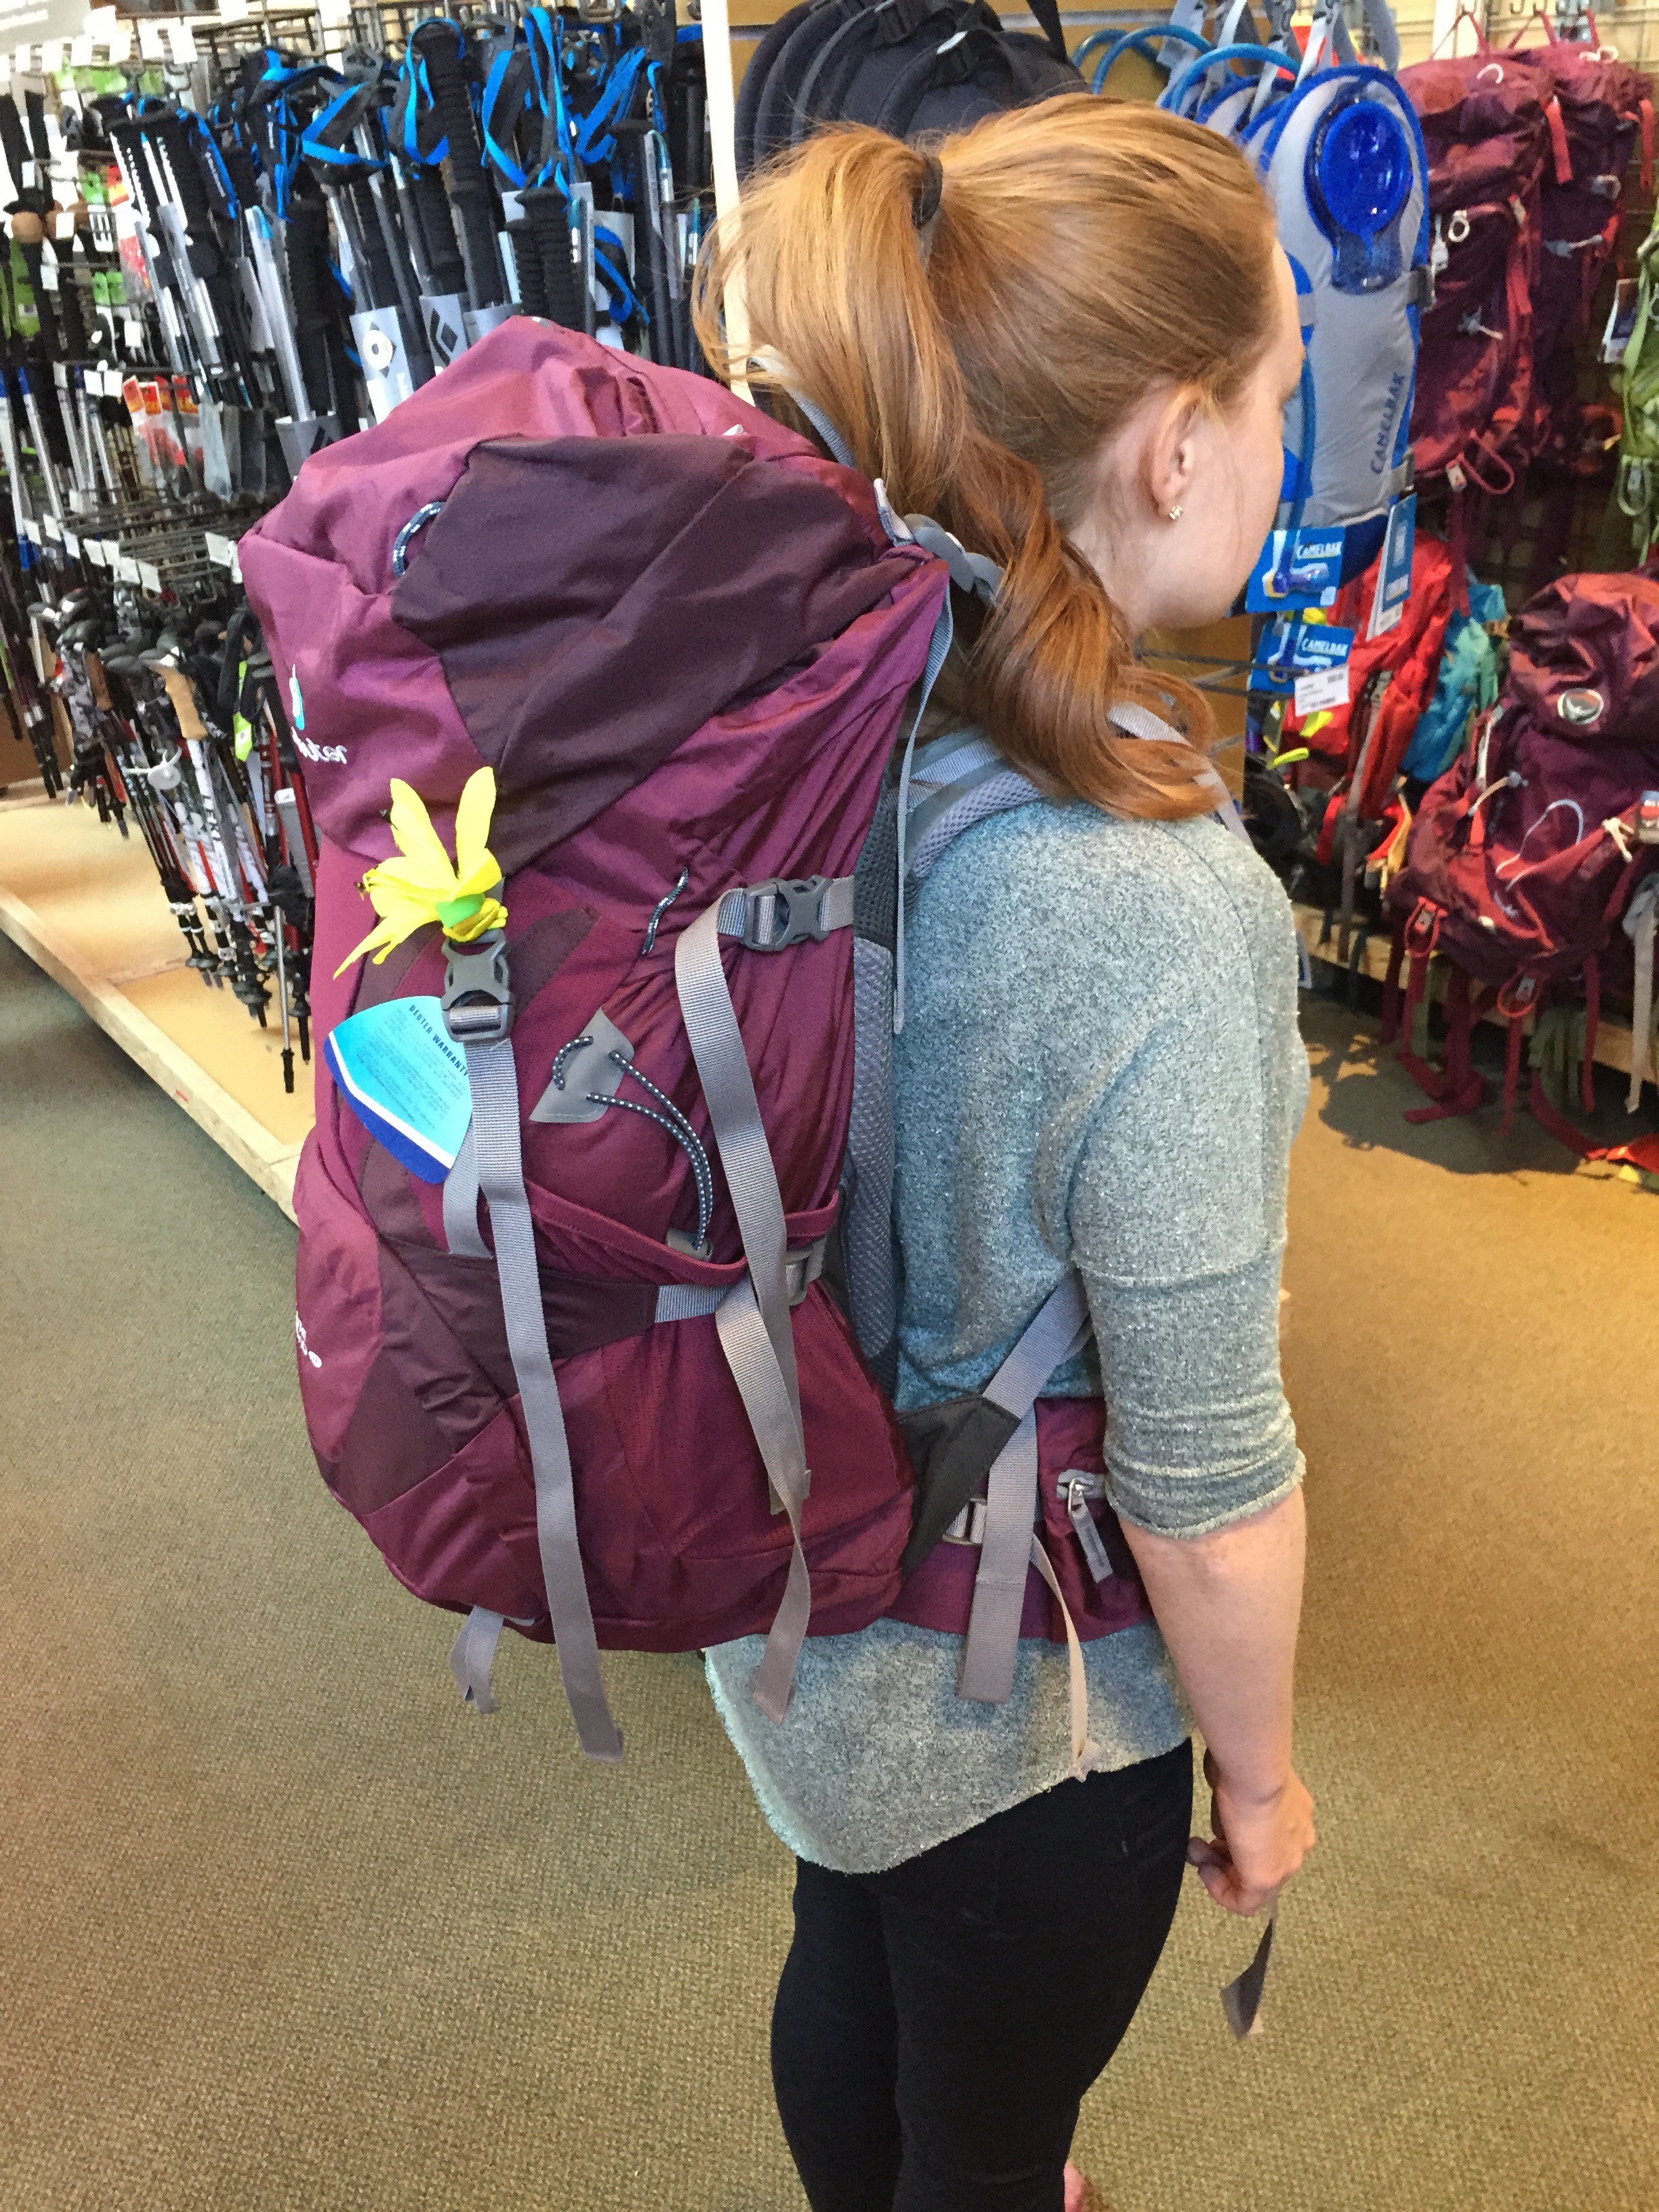 The first time I tried on my pack in REI! (They fill it with bags of sand so you can tell if it fits correctly when it's full.)